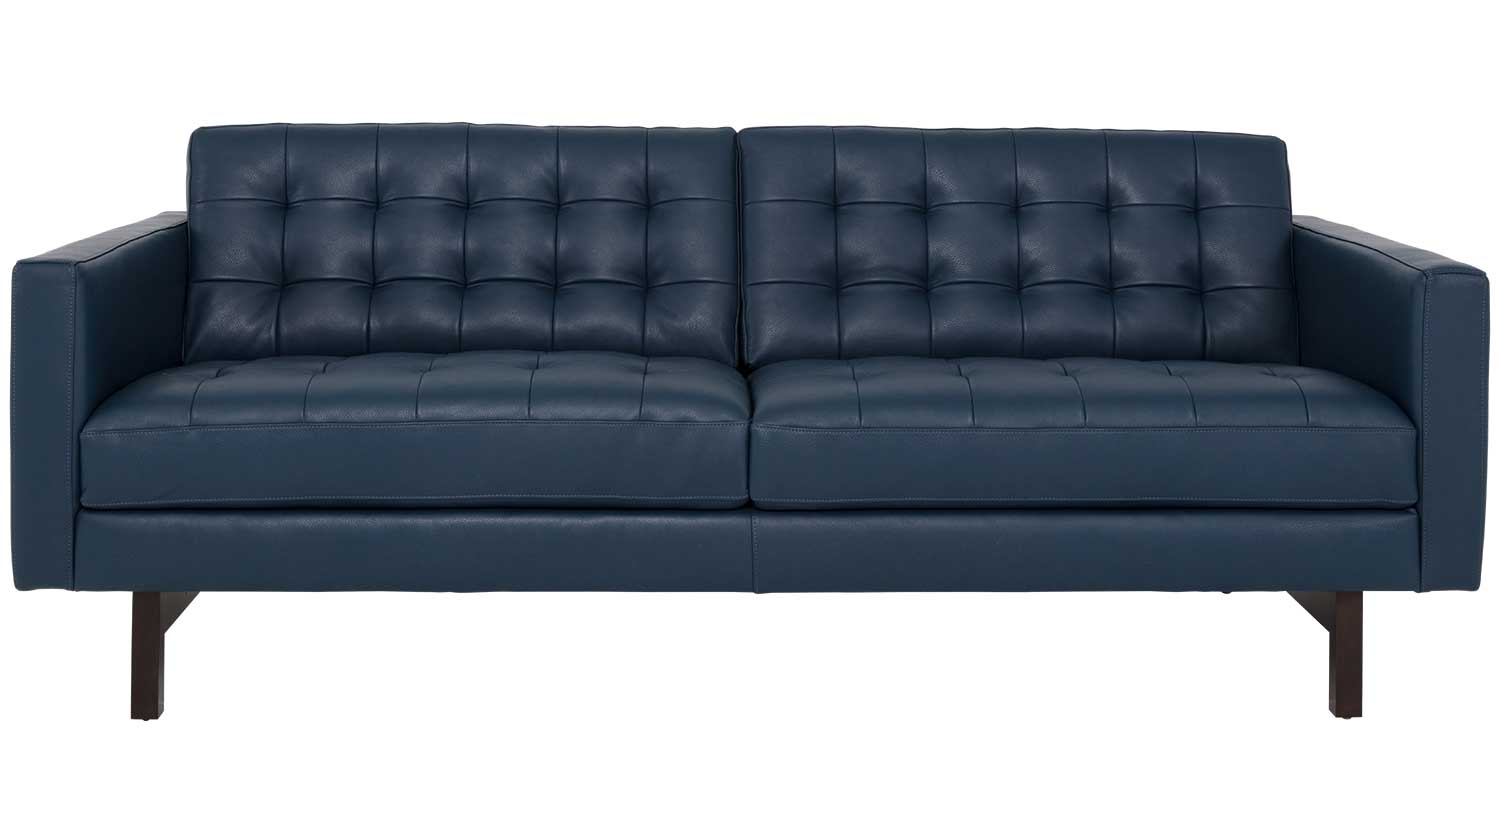 Circle Furniture Parker Sofa Designer Sofas Boston